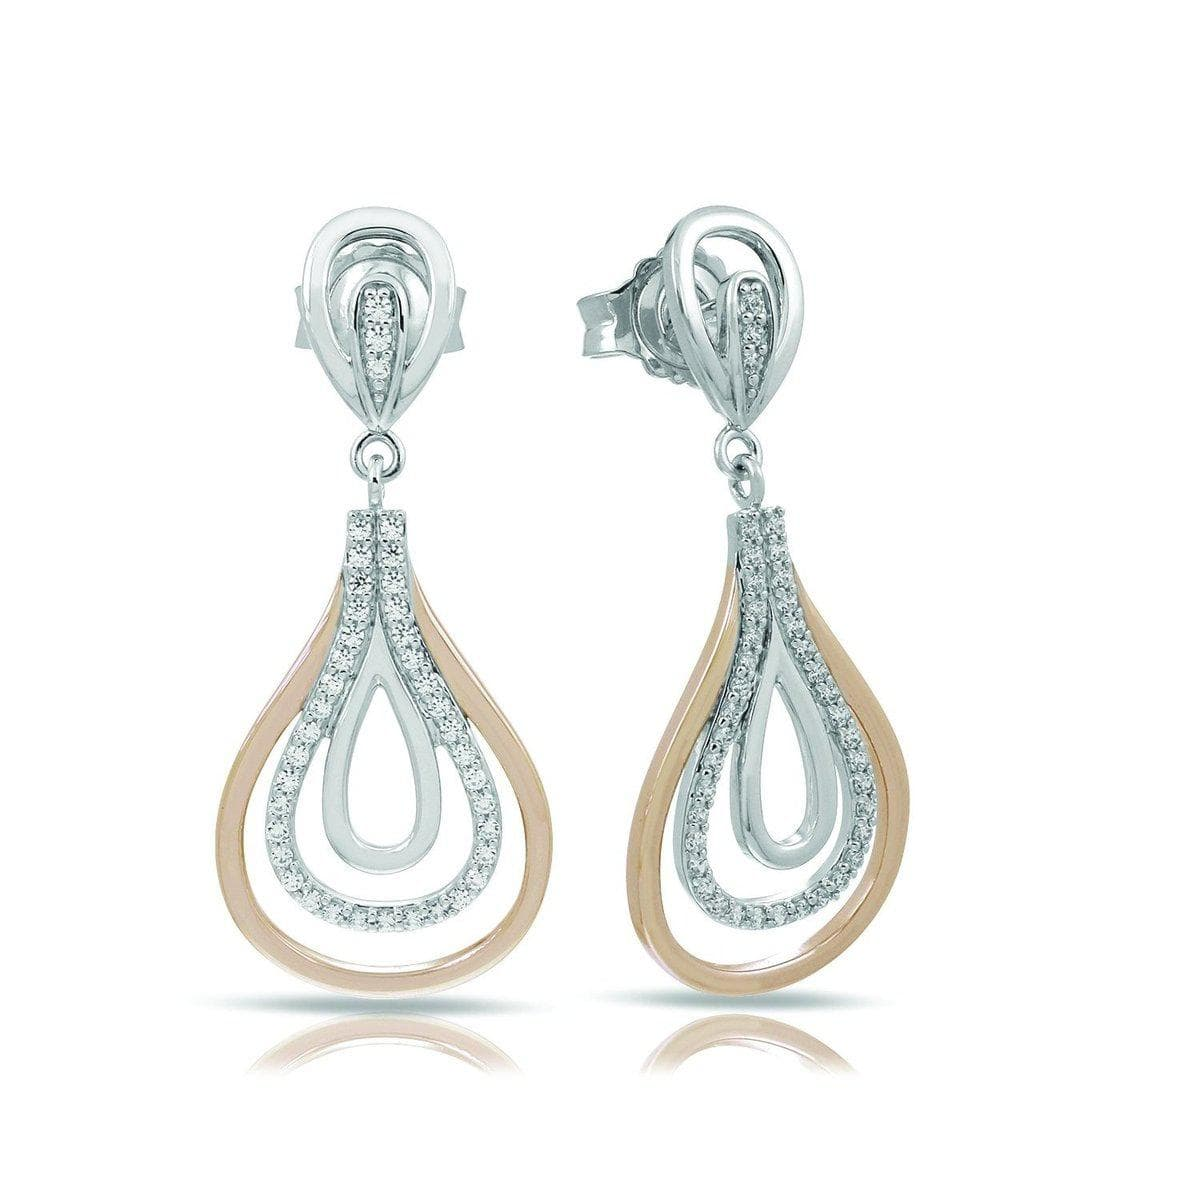 Onda Silver and Rose Earrings-Belle Etoile-Renee Taylor Gallery